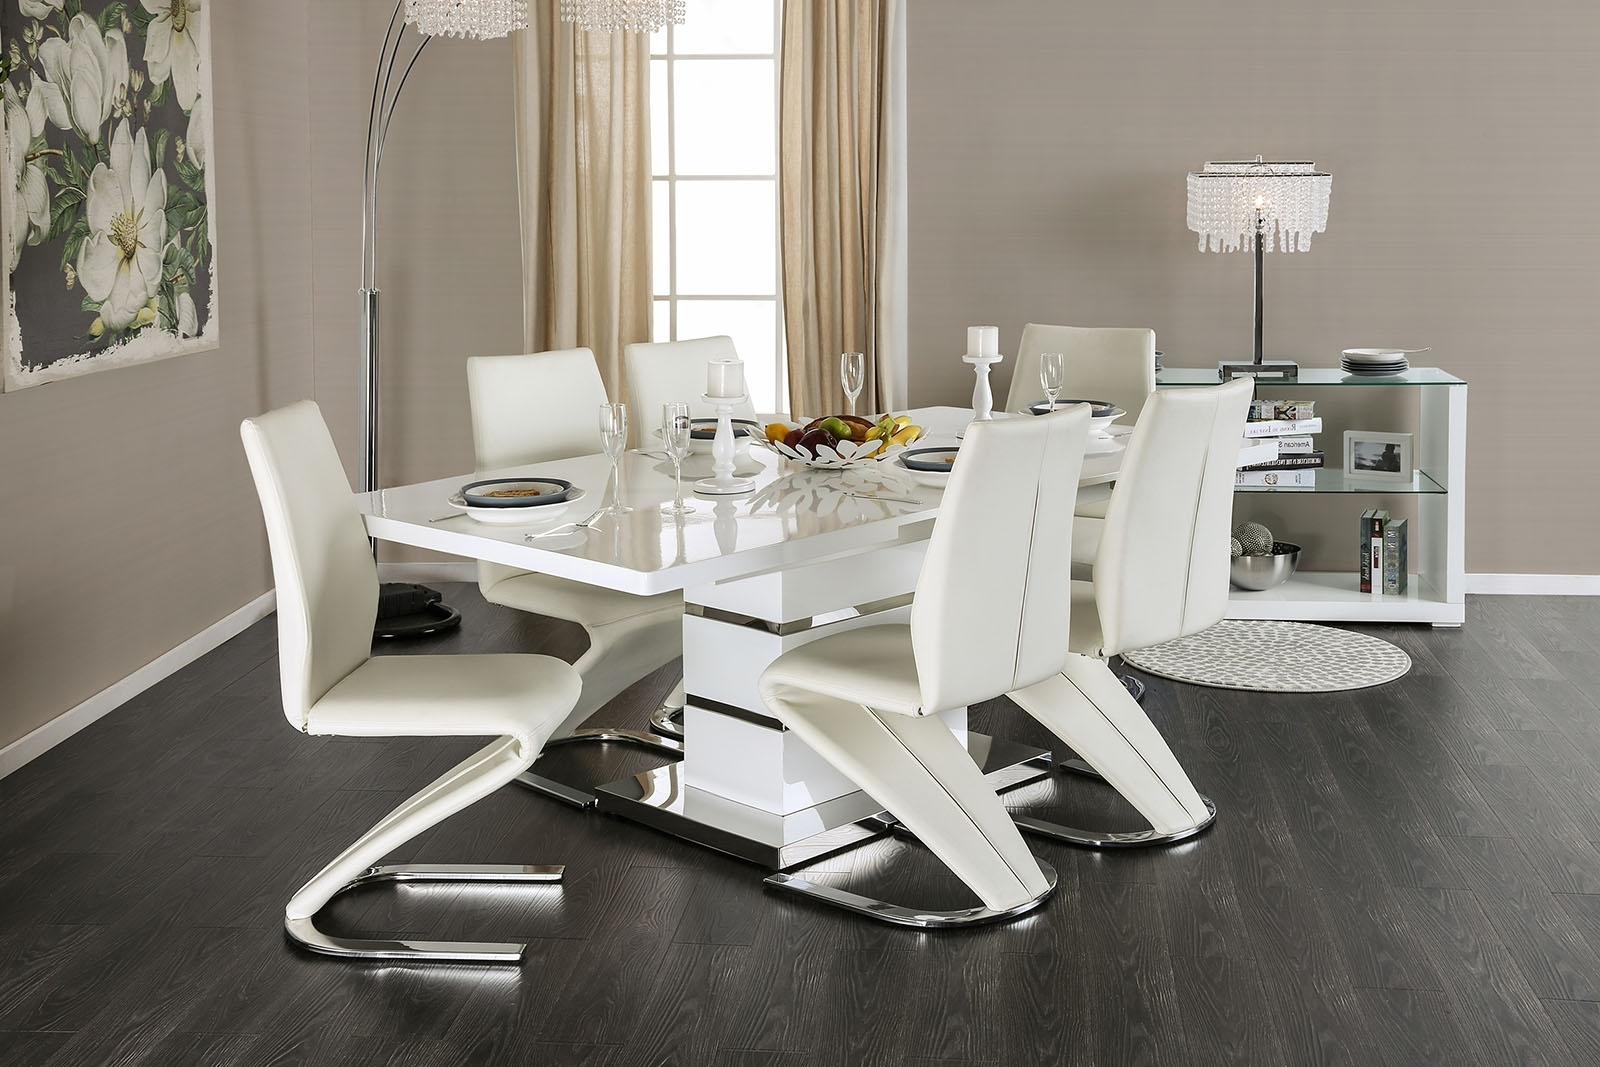 White High Gloss Dining Tables And Chairs Throughout Famous Midvale Contemporary Style White High Gloss Lacquer Finish & Chrome (View 22 of 25)